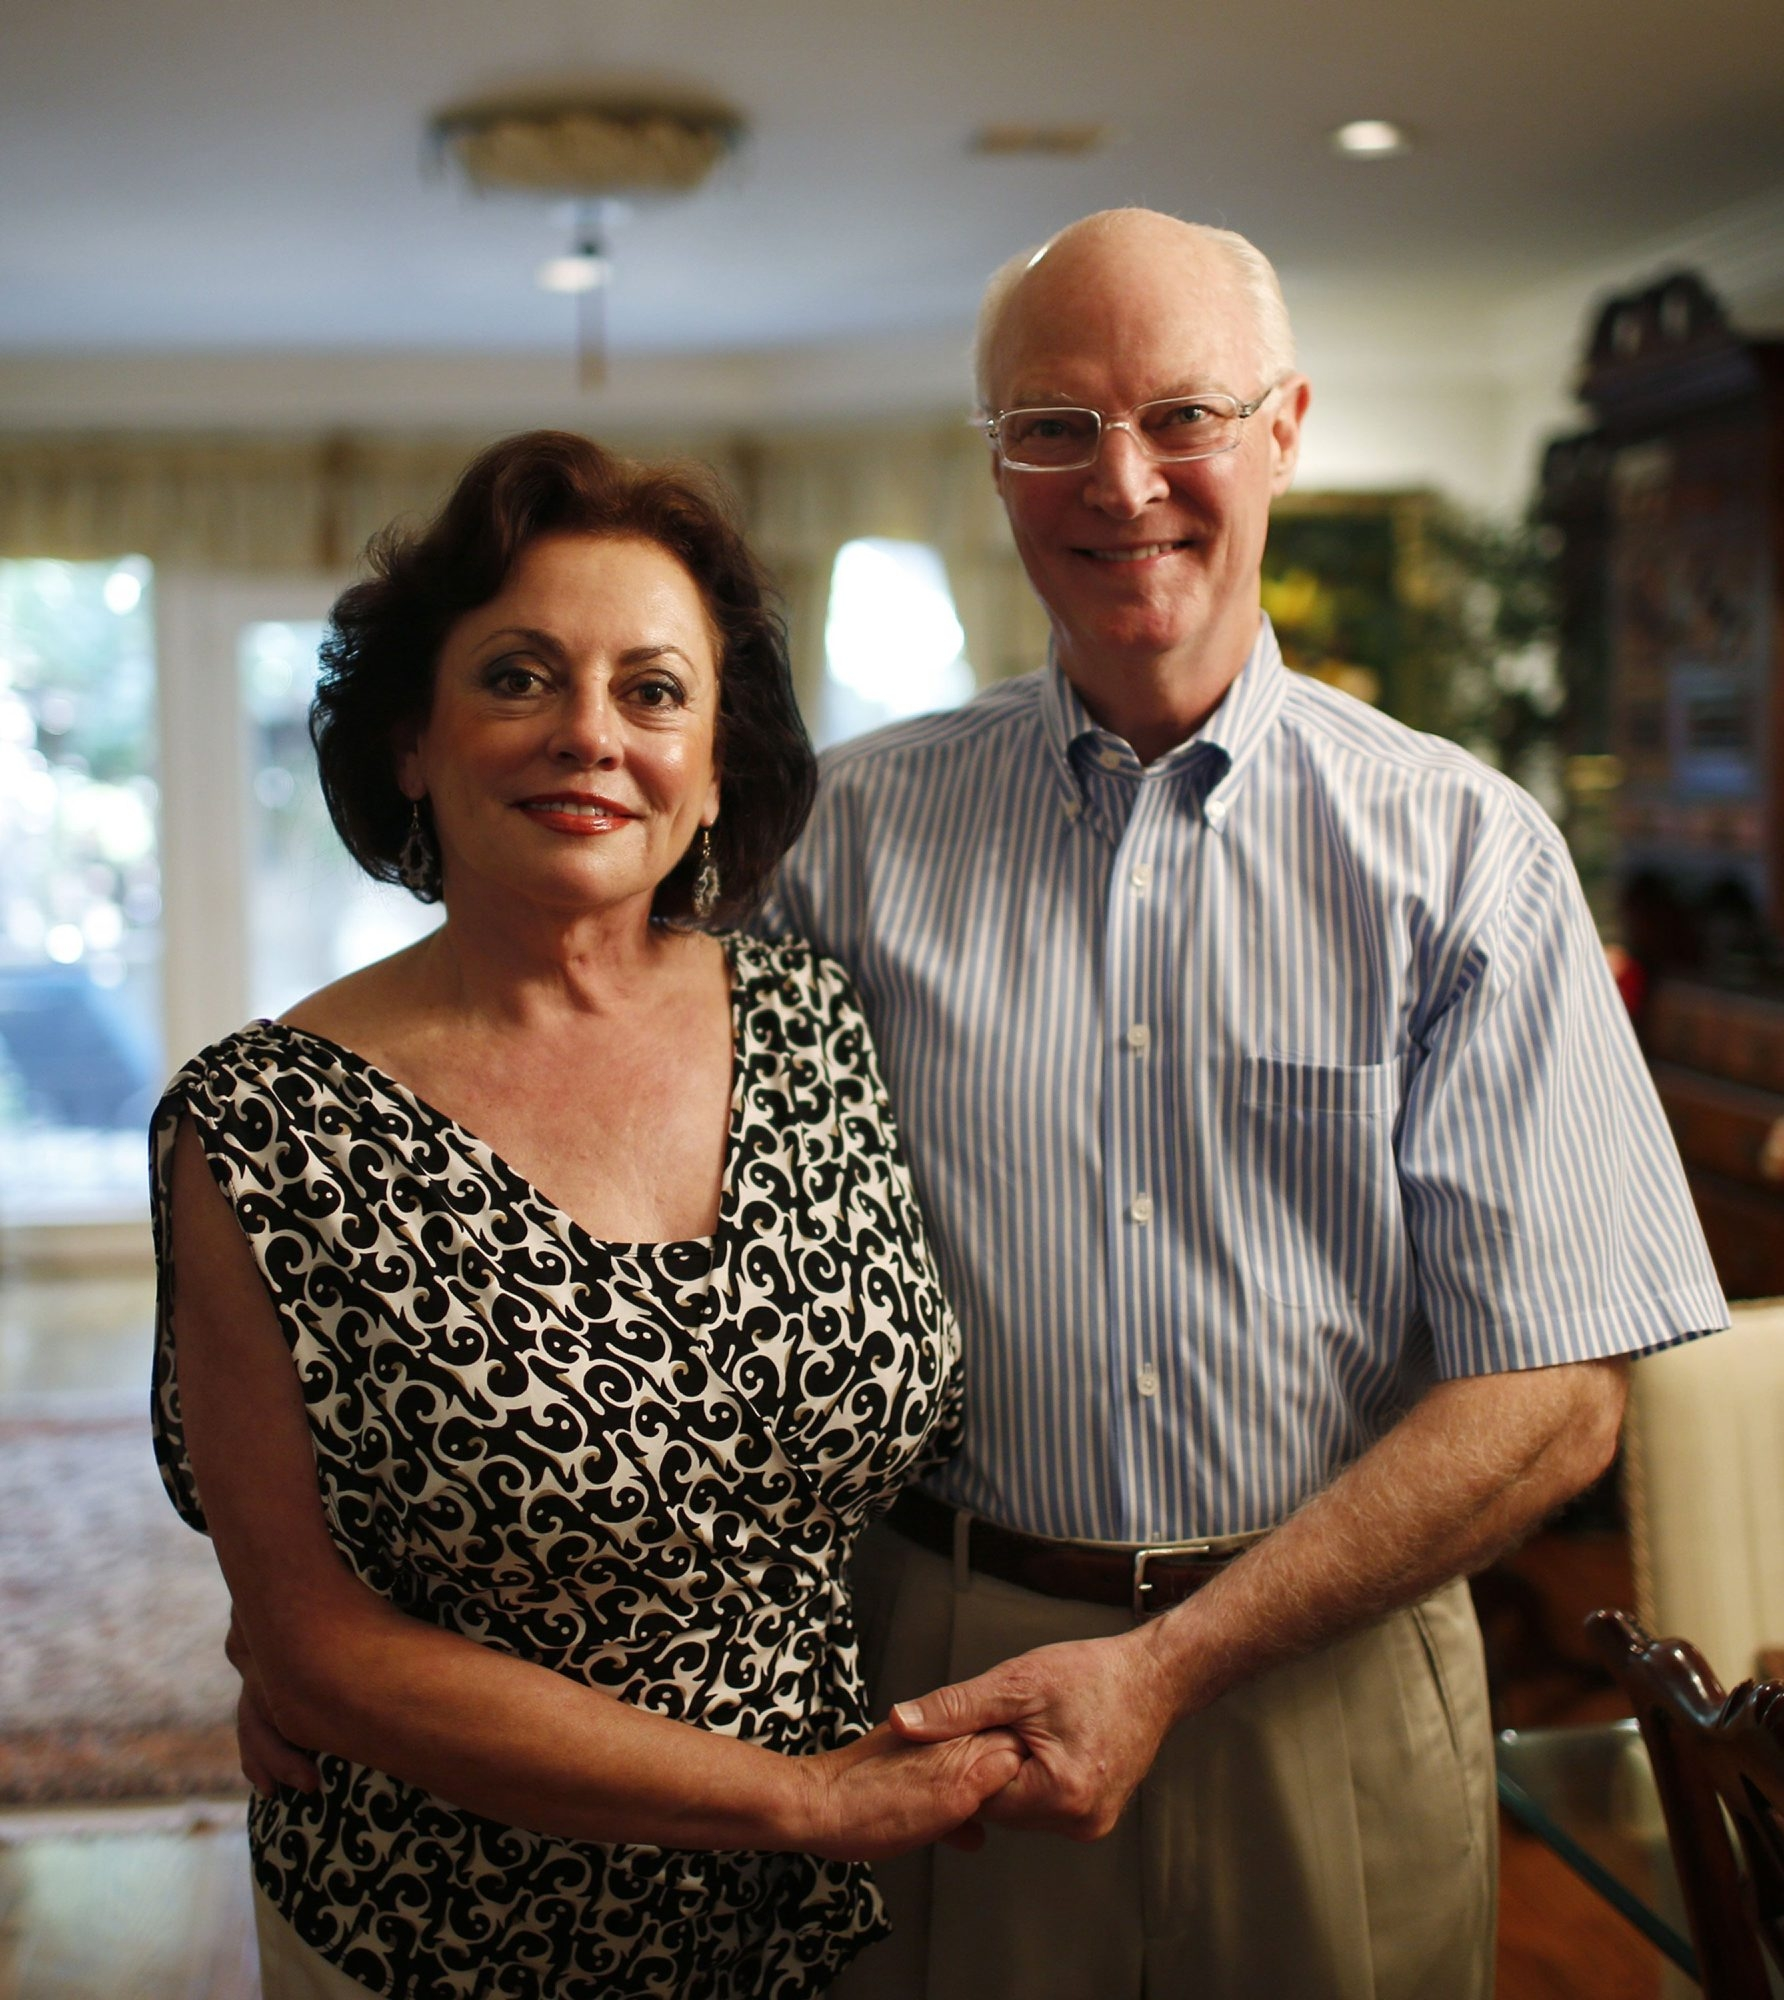 Bruce Woods, 64, and his wife, Haroldy, 63, are preparing to apply for Medicare. But before they do, he and Haroldy want to learn the features of Medicare Advantage plans and Medigap policies to ensure that they have proper coverage.